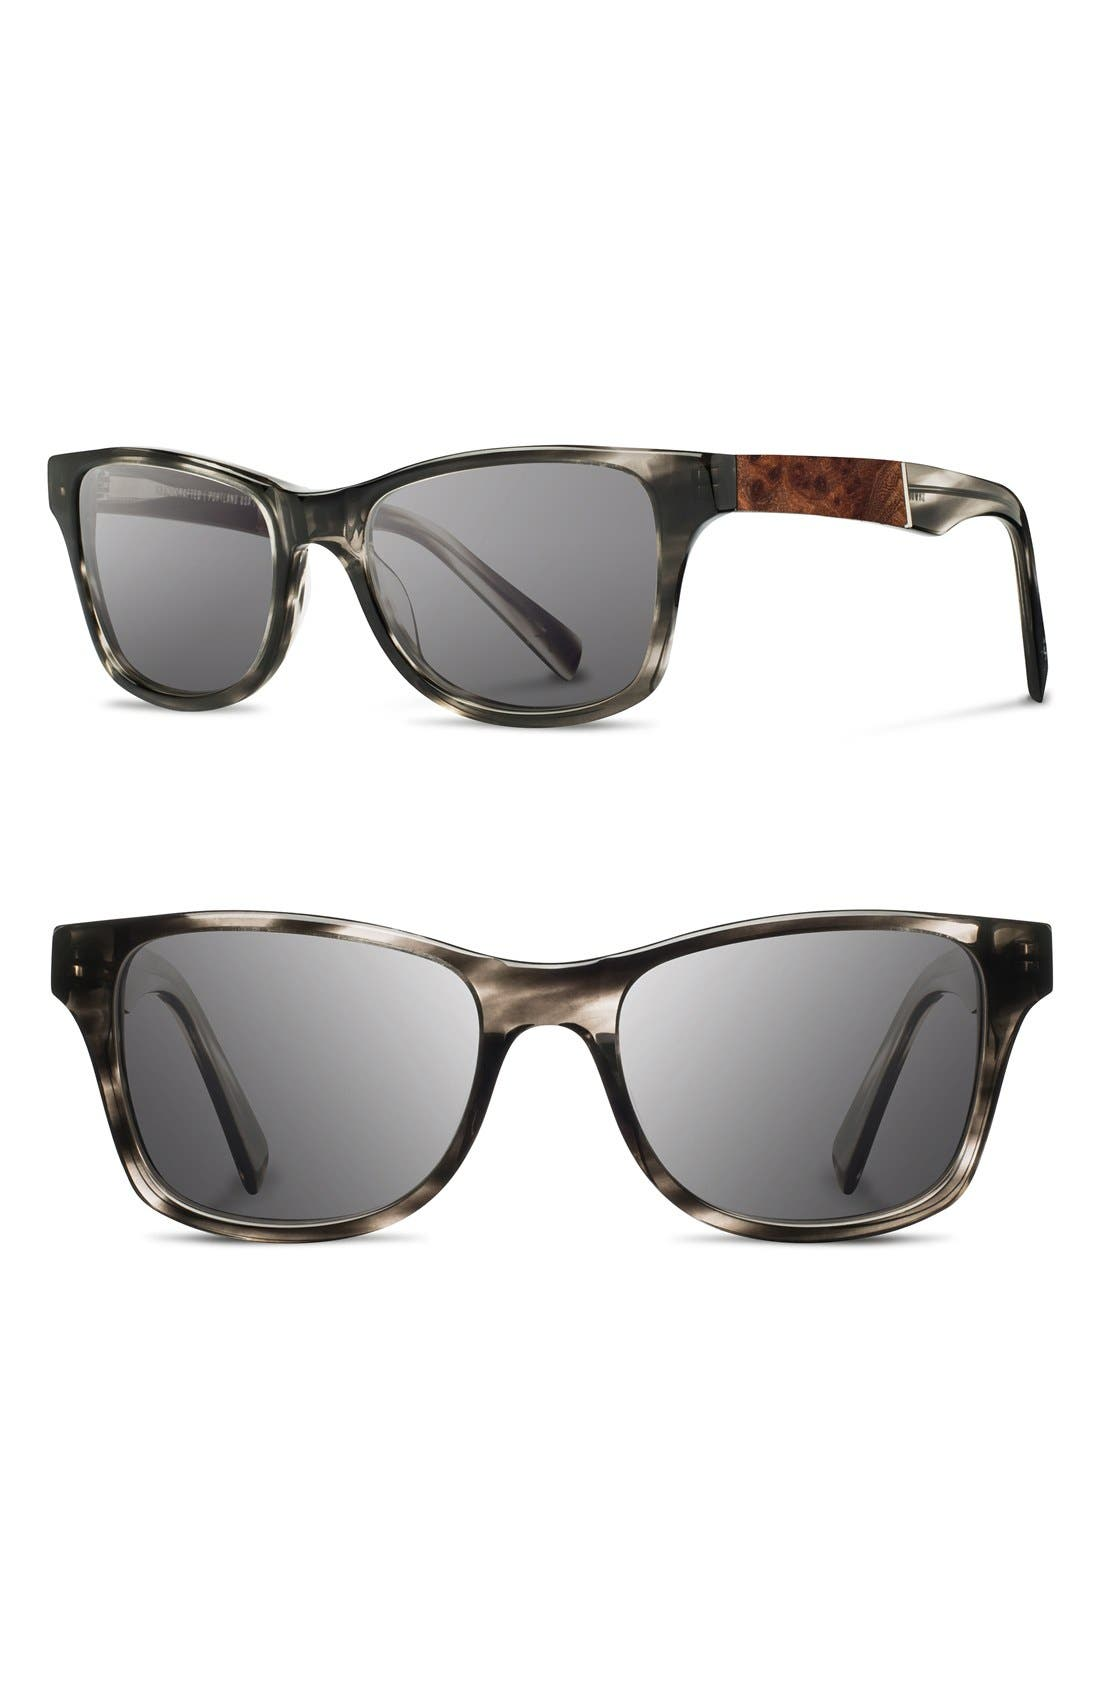 'Canby' 53mm Polarized Sunglasses,                             Main thumbnail 1, color,                             Pearl Grey/ Elm Burl/ Grey